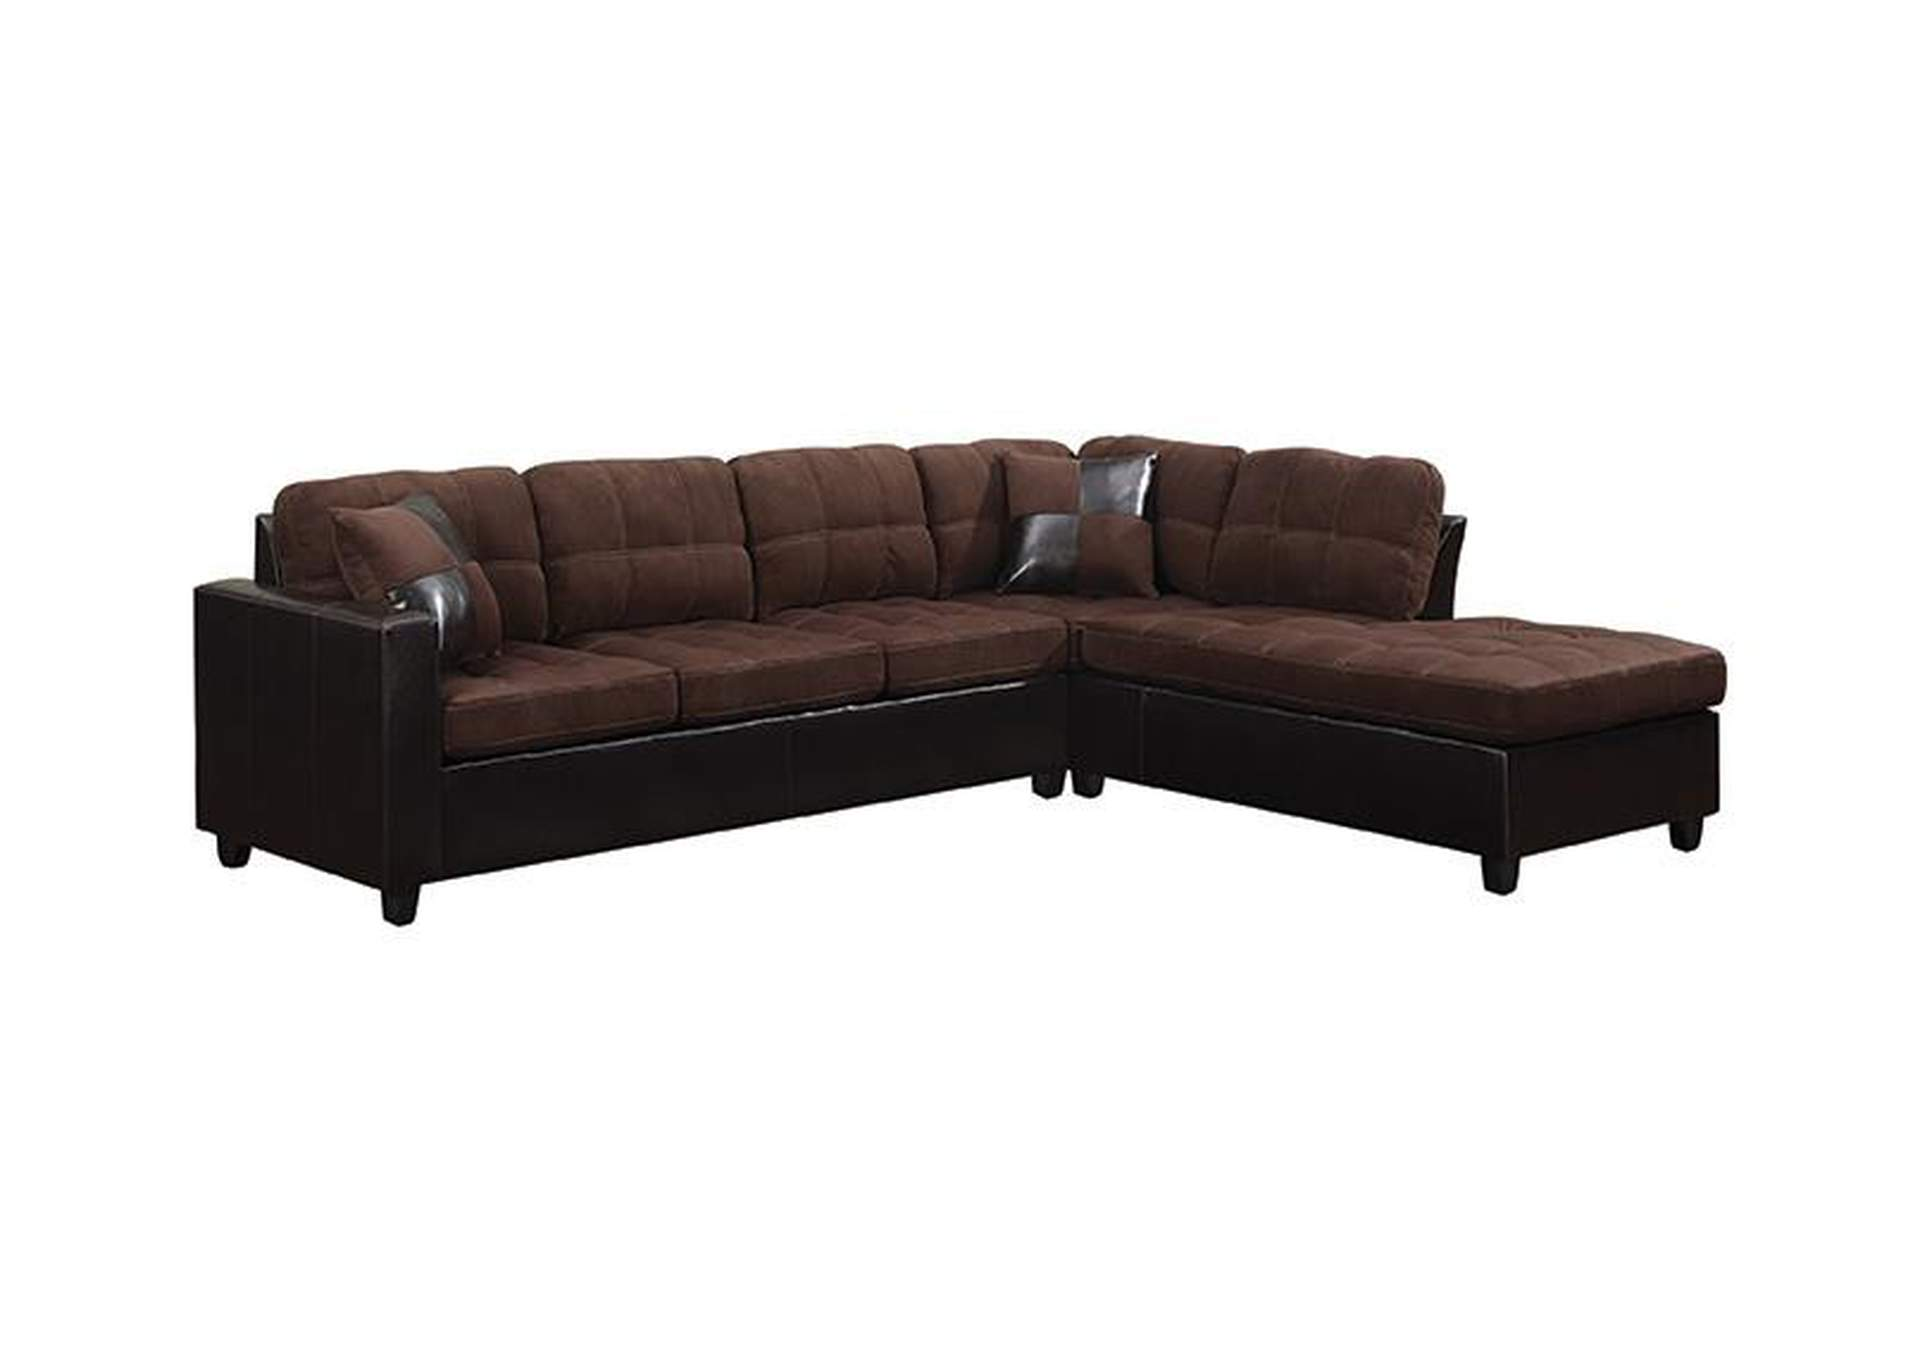 Eerie Black Mallory Casual Chocolate Sectional,Coaster Furniture